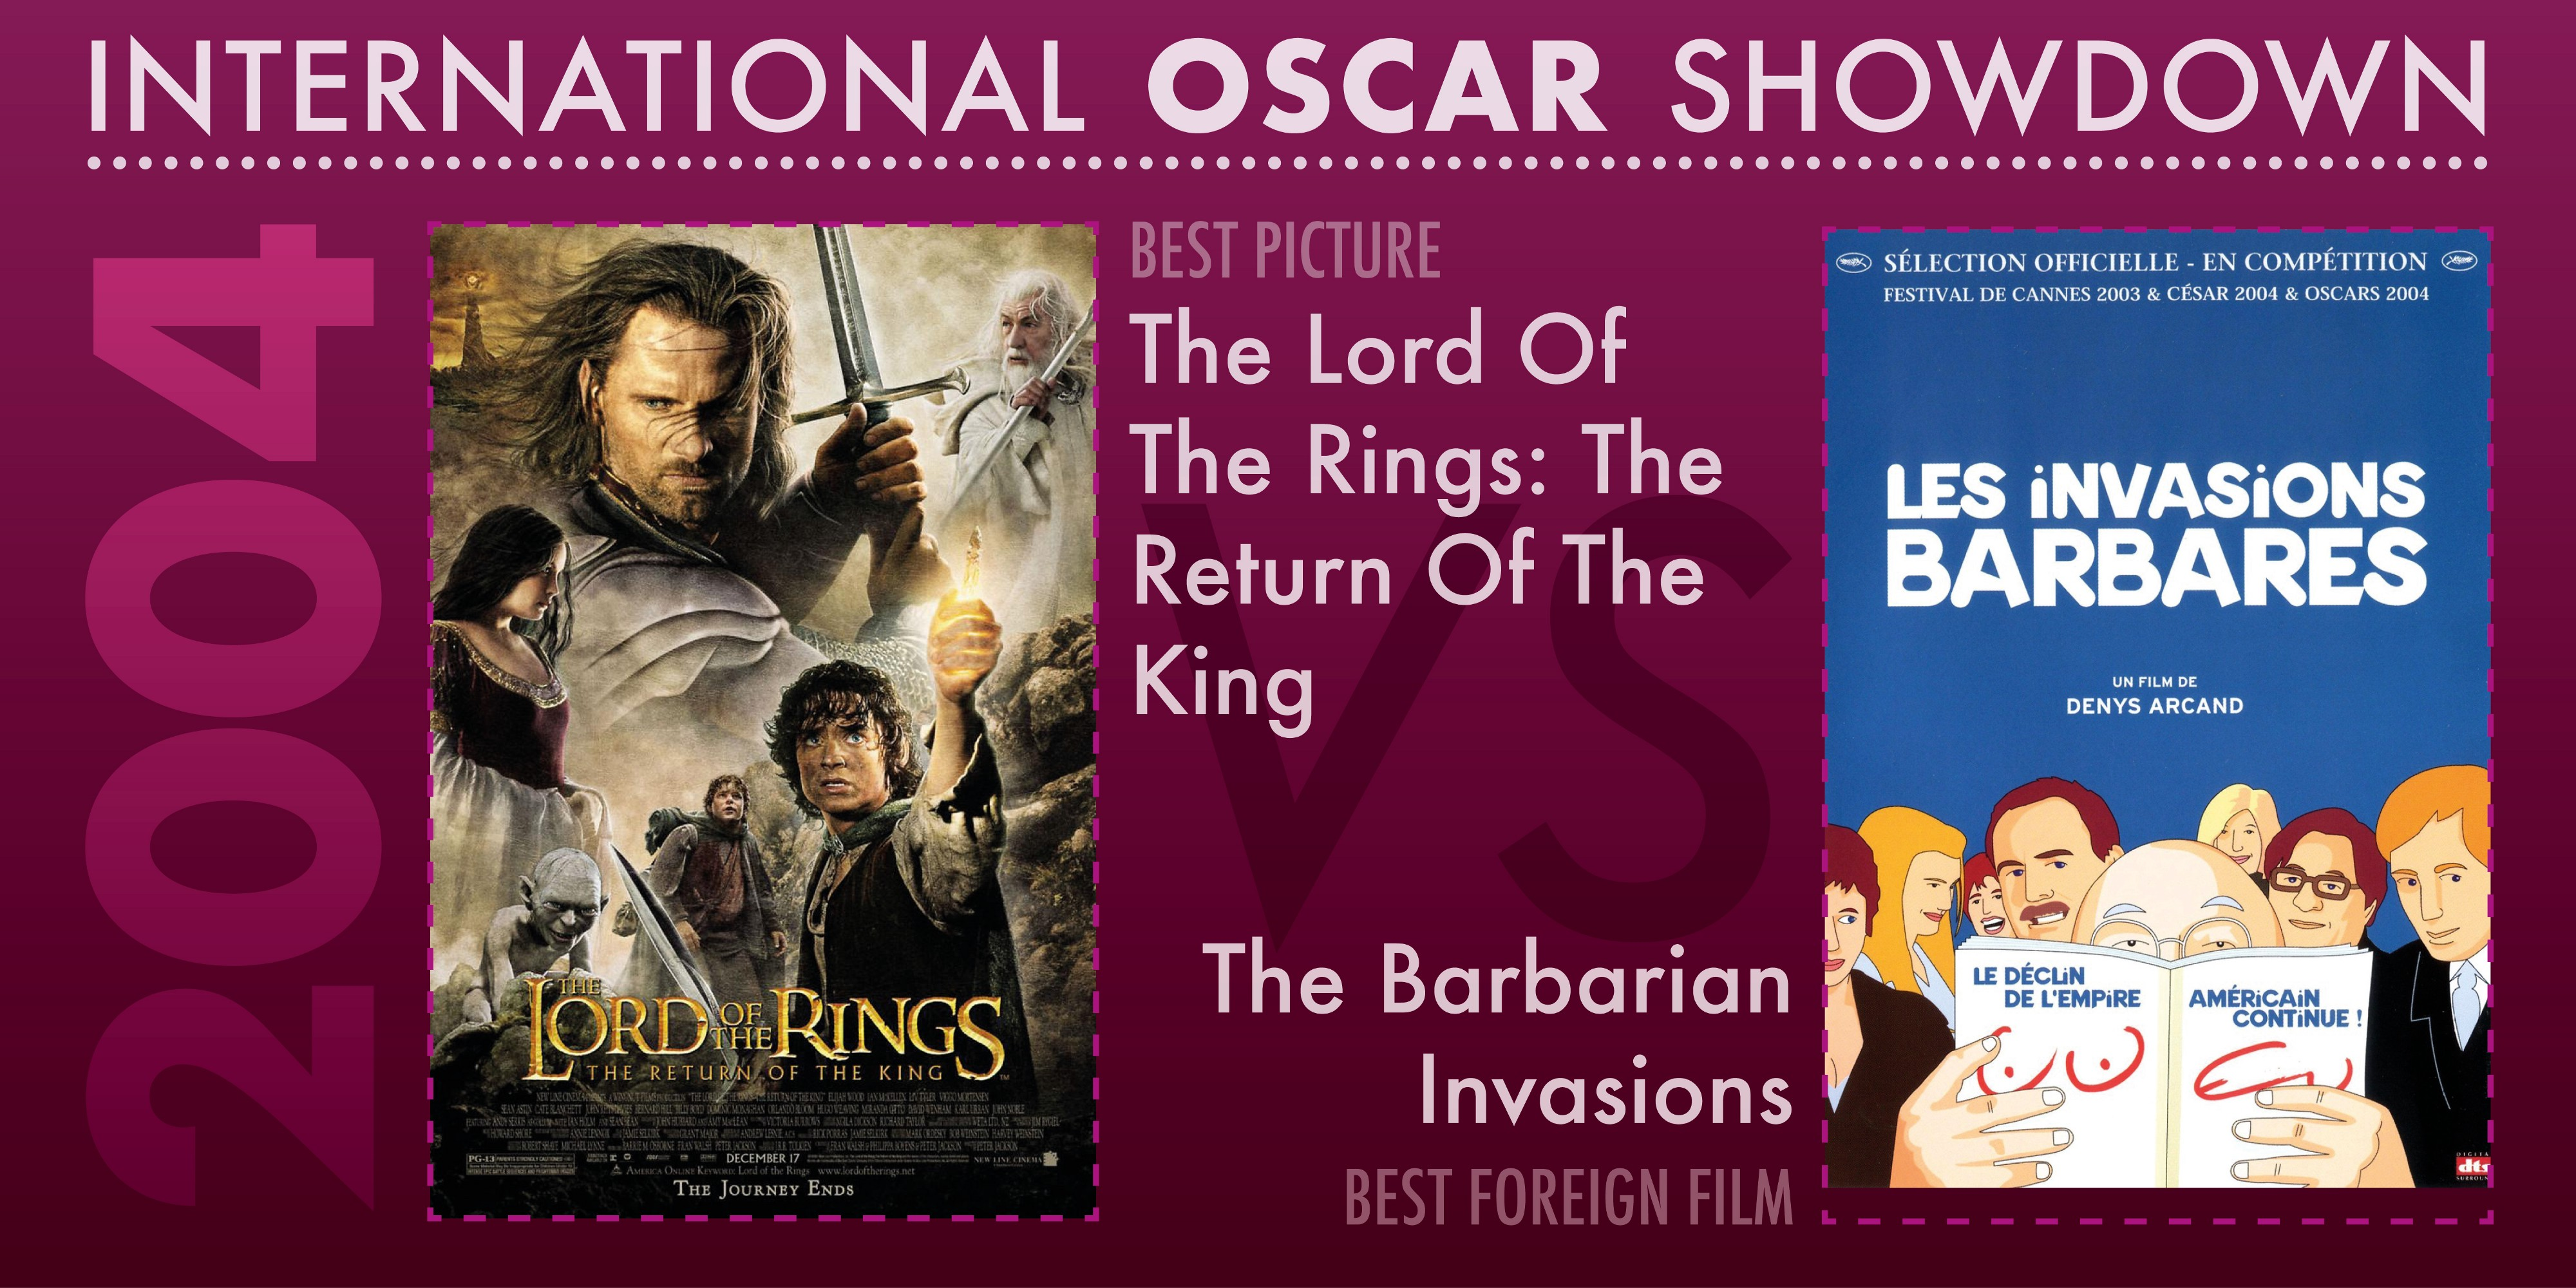 The 2004 International Oscar Showdown features The Lord Of The Rings: The Return Of The King and The Barbarian Invasions